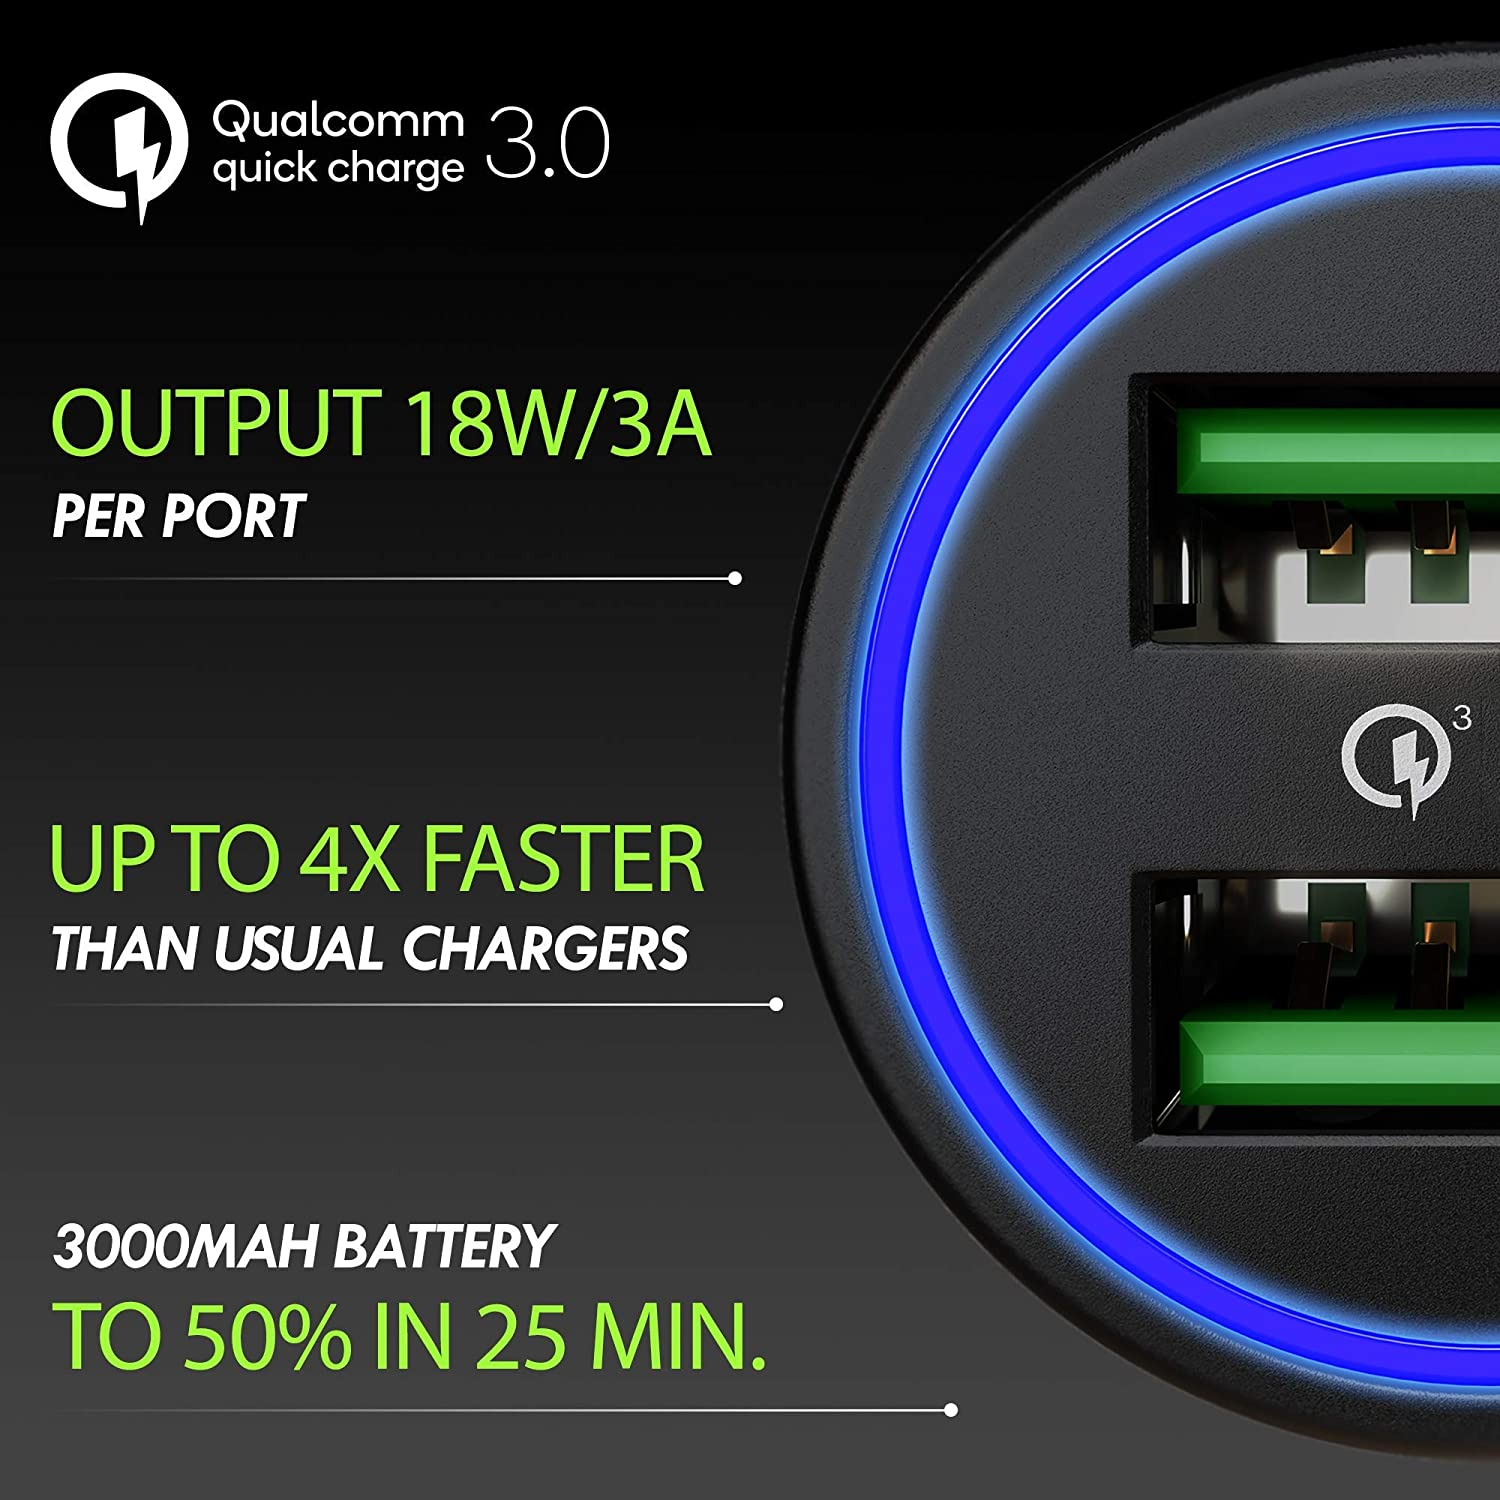 Two Ports QC 3.0 3A Galaxy S10 S9 S8 S7 S6 Note LG Nexus Pixel etc. Compatible with Any iPhone 2019 Car Charger by MONGOORA Qualcomm Quick Charge 3.0 Dual USB 6A//36W Fast Car Charger Adapter